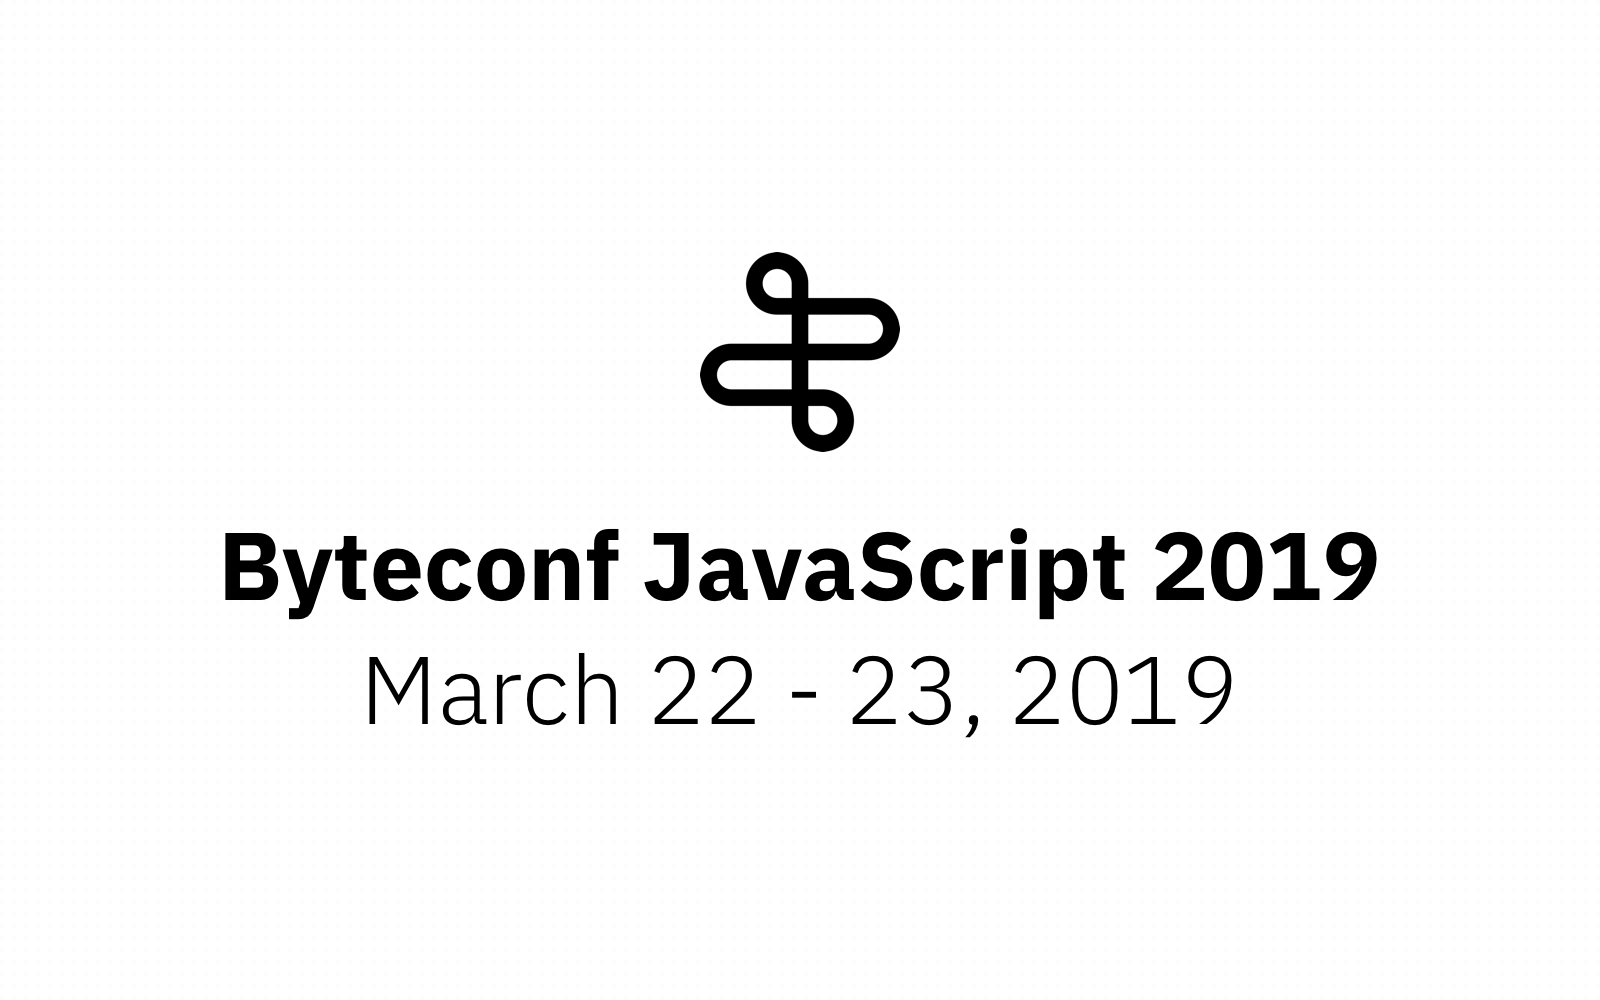 Announcing our speakers for Byteconf JavaScript 2019